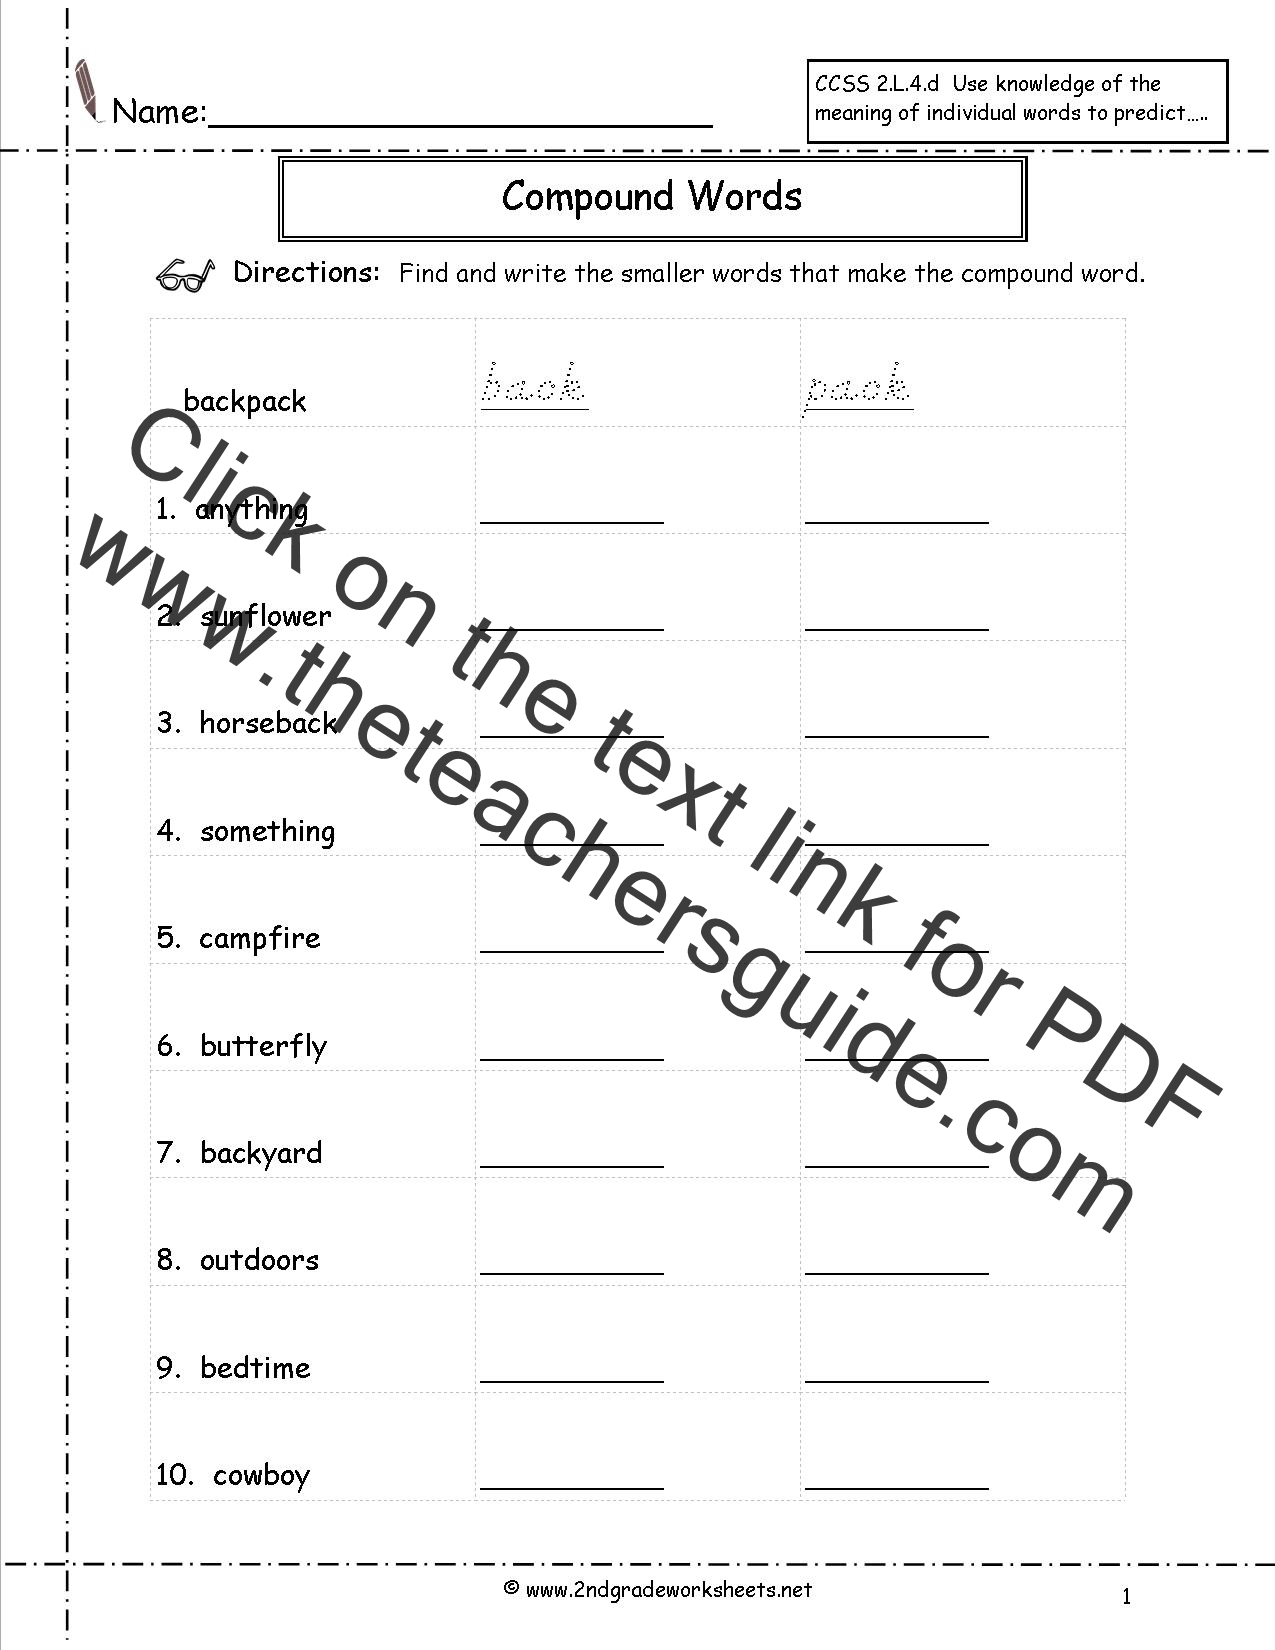 Printables Grammar Worksheets For 2nd Grade free languagegrammar worksheets and printouts compound words worksheets